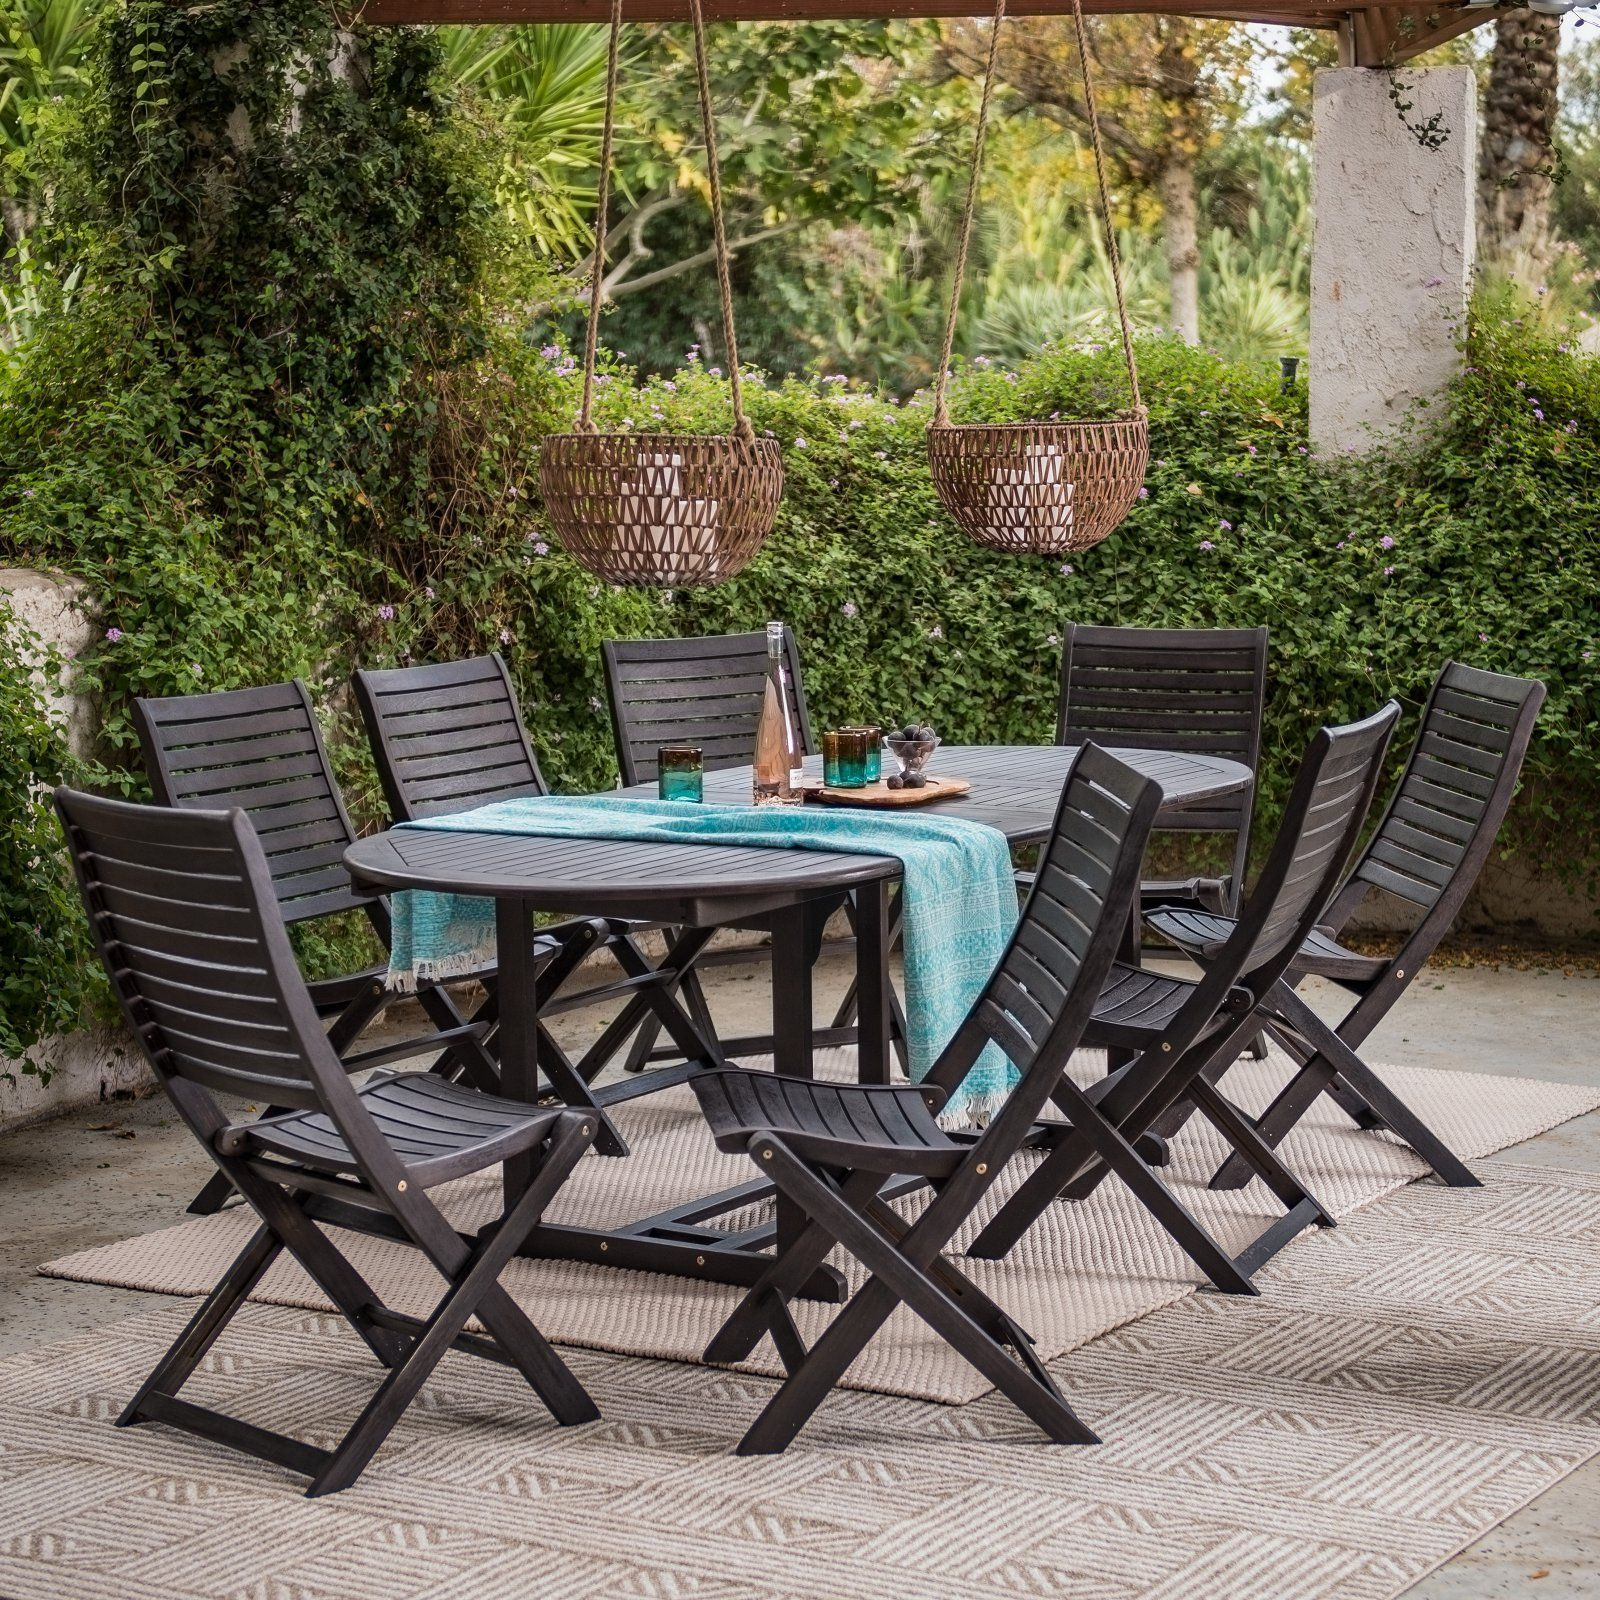 Outdoor Coral Coast Colter Bay Wood Patio Dining Set Wood Patio